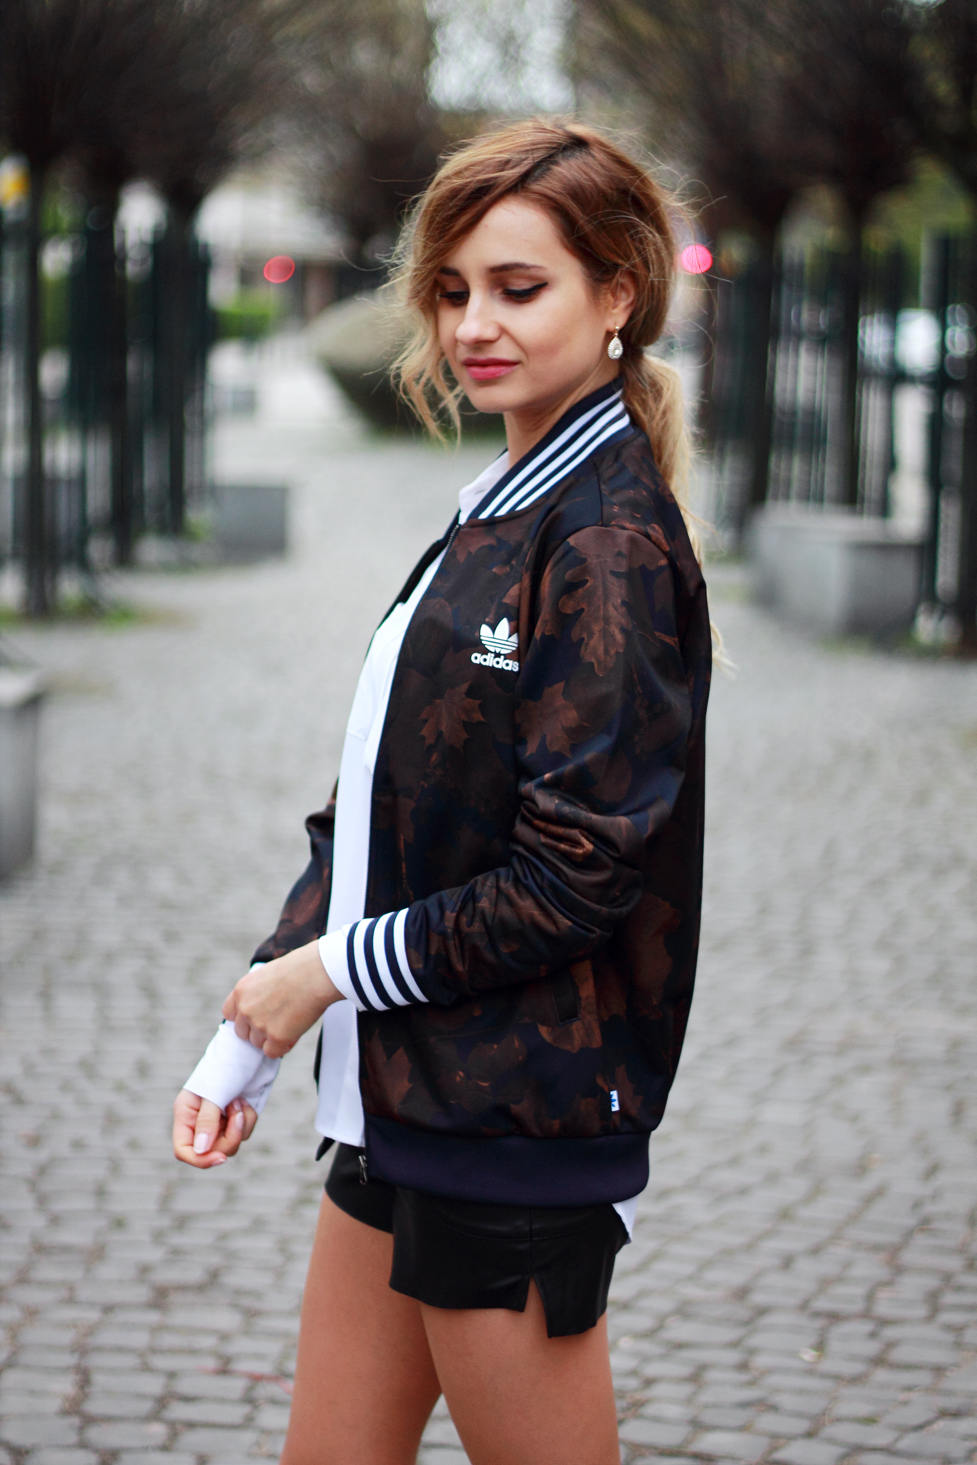 street style tumblr girl pretty blonde ootd look lookbook outfit adidas jacket sporty style fashion